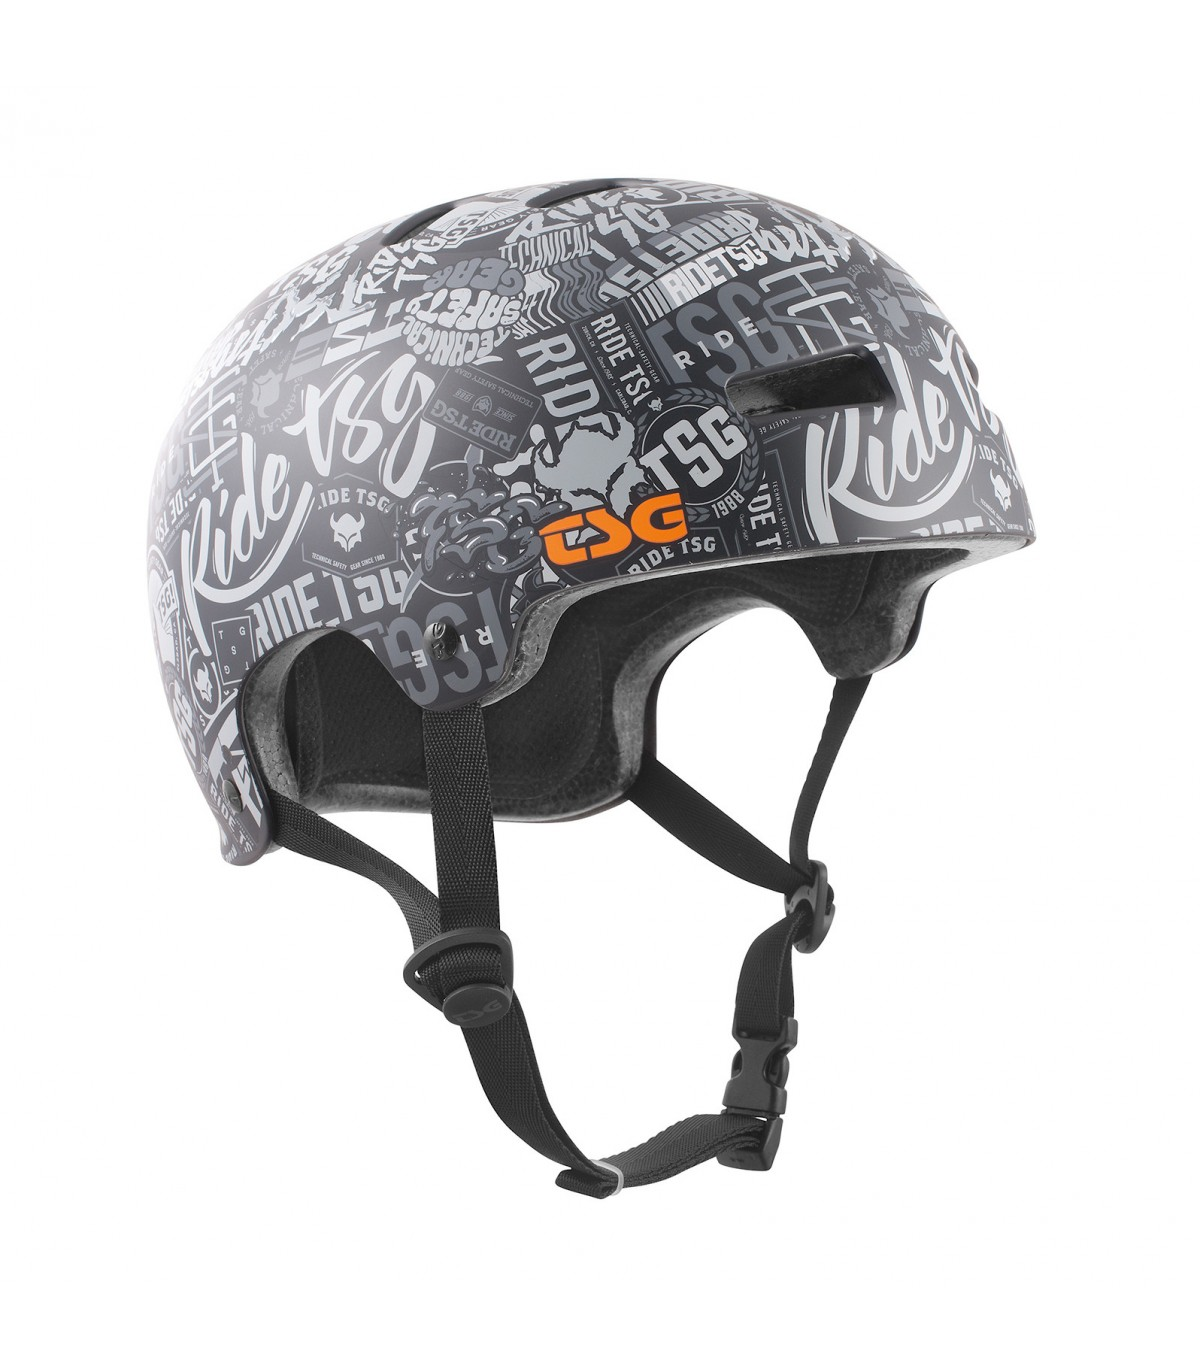 Tsg helmet l xl gravity graphic stickerbomb